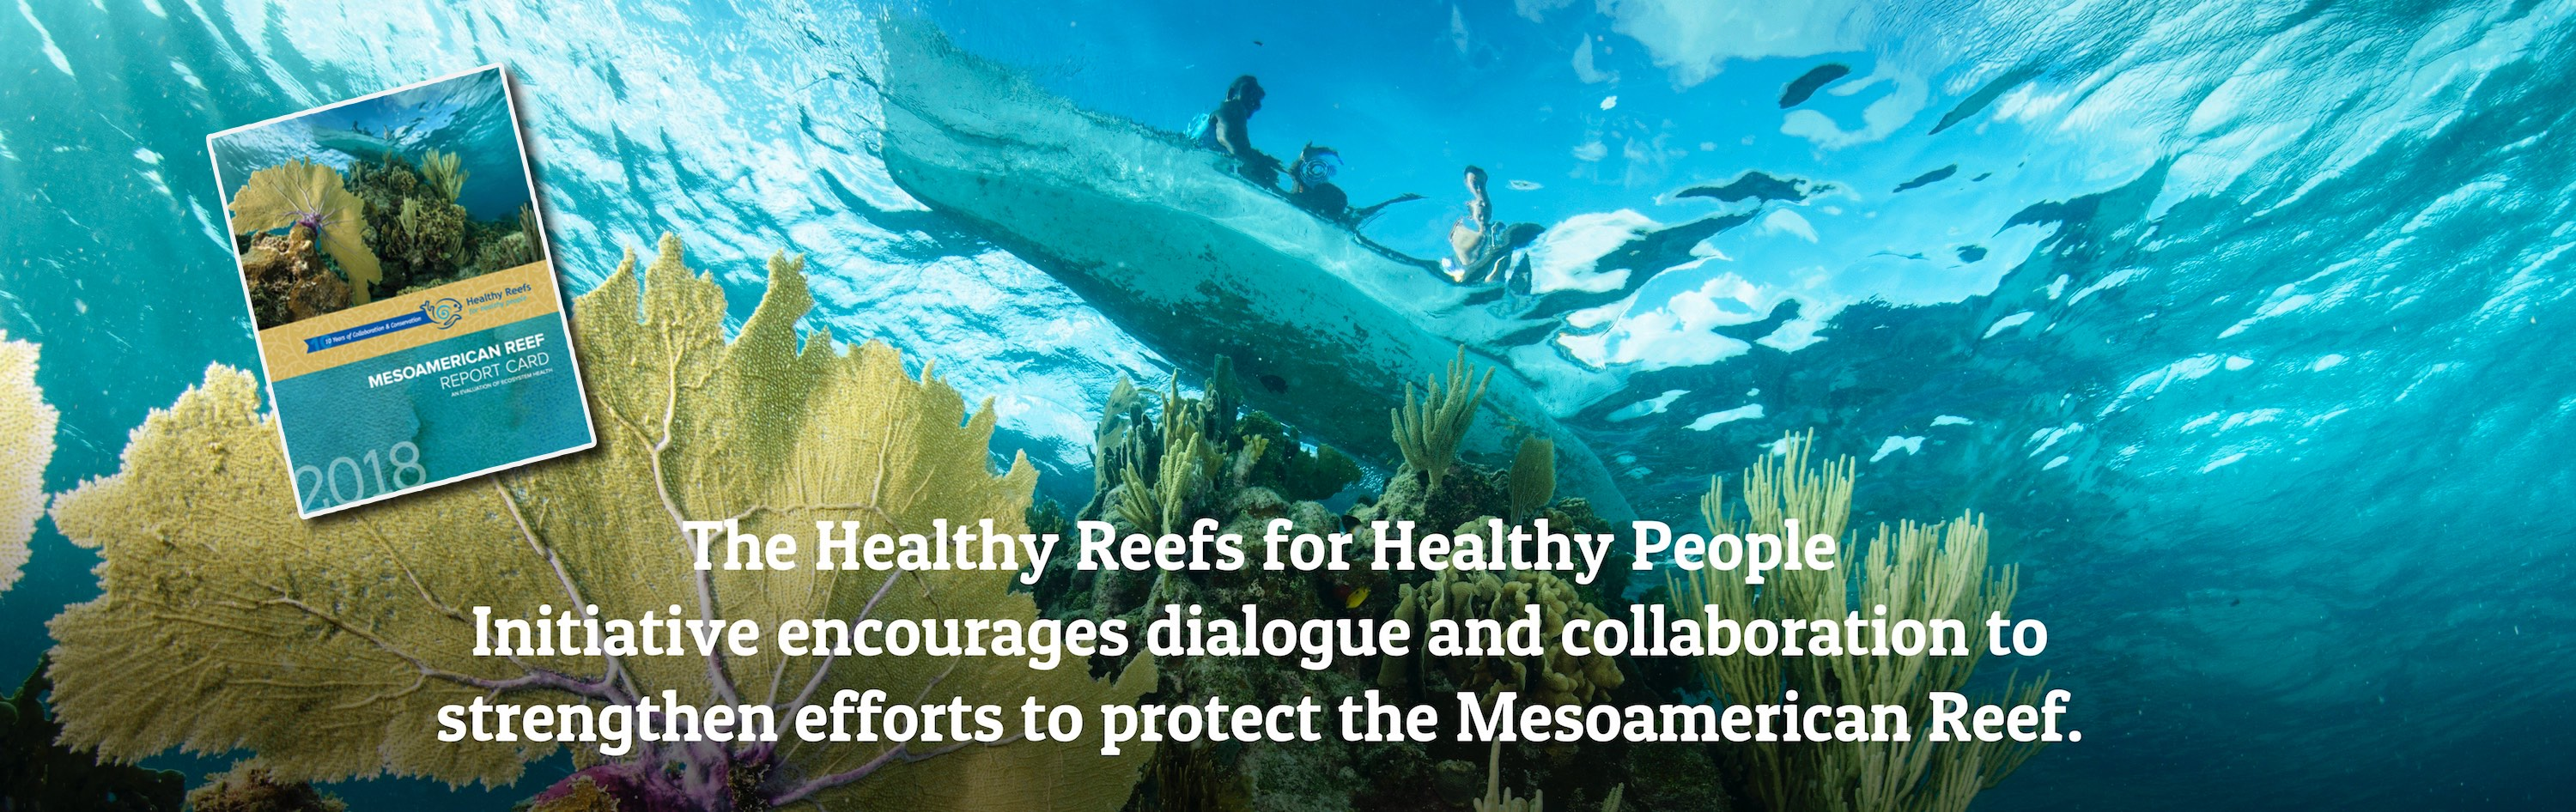 healthy reefs healthy reefs for healthy people